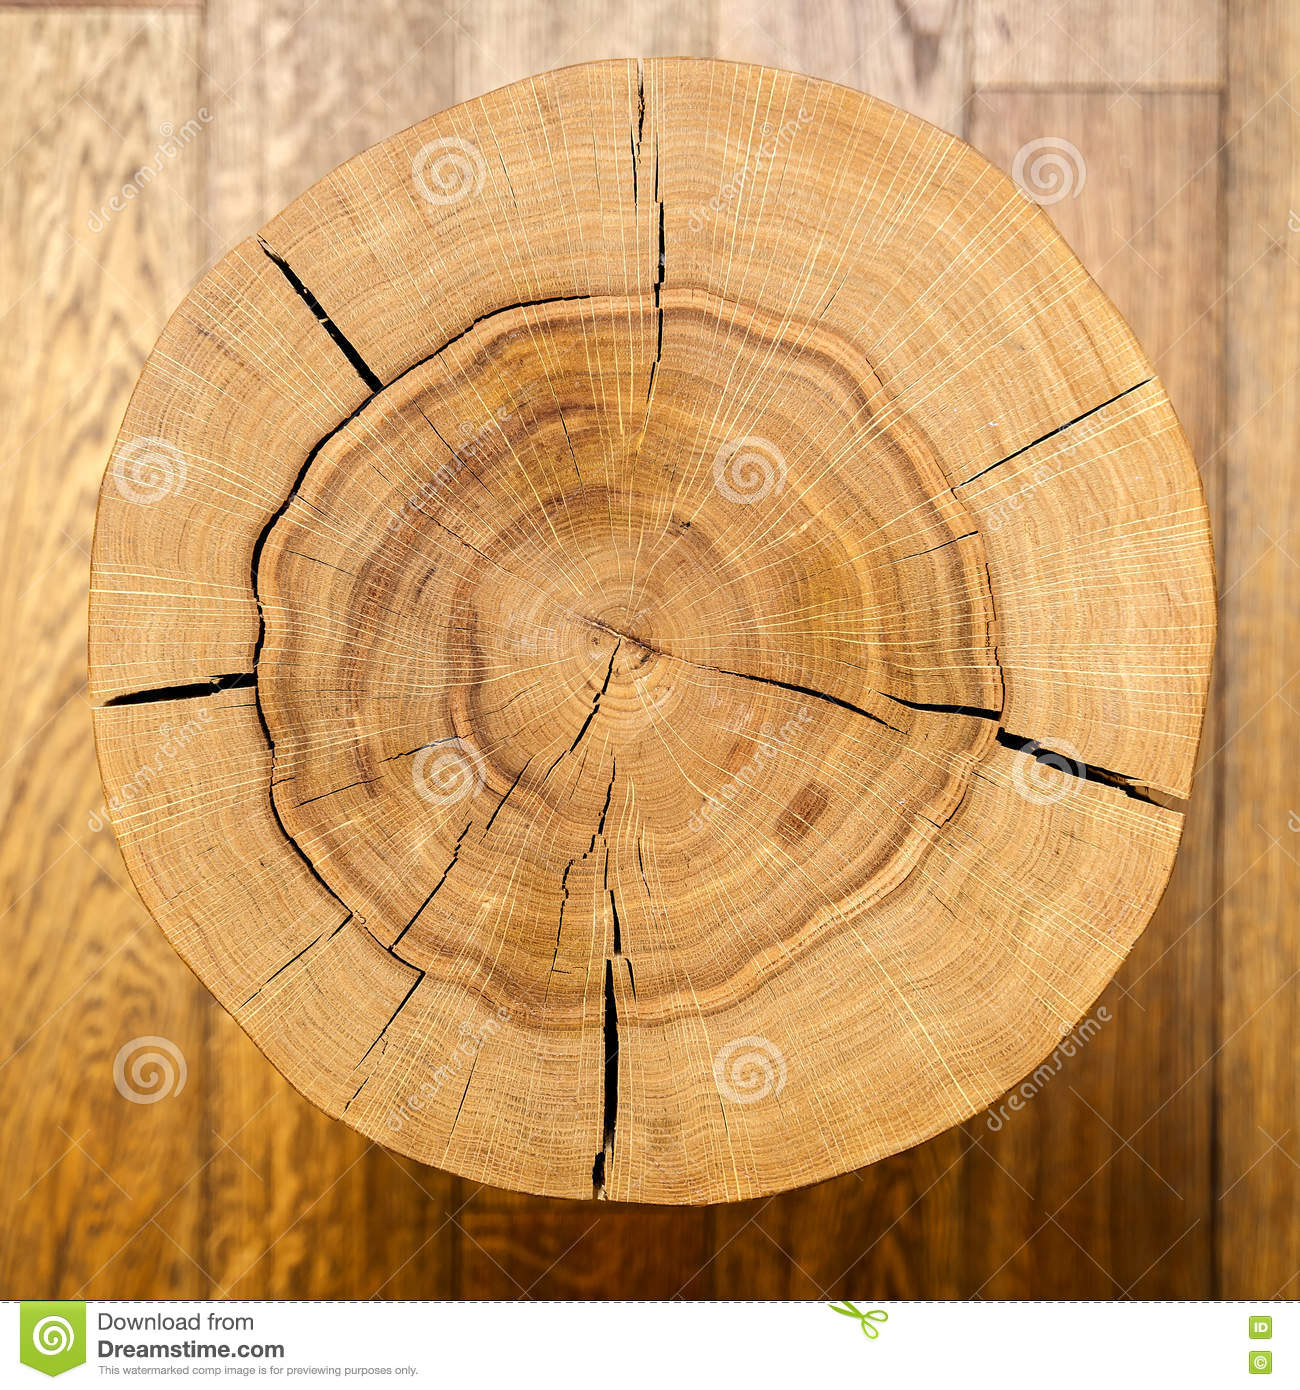 log core against a wooden floor top view background texture